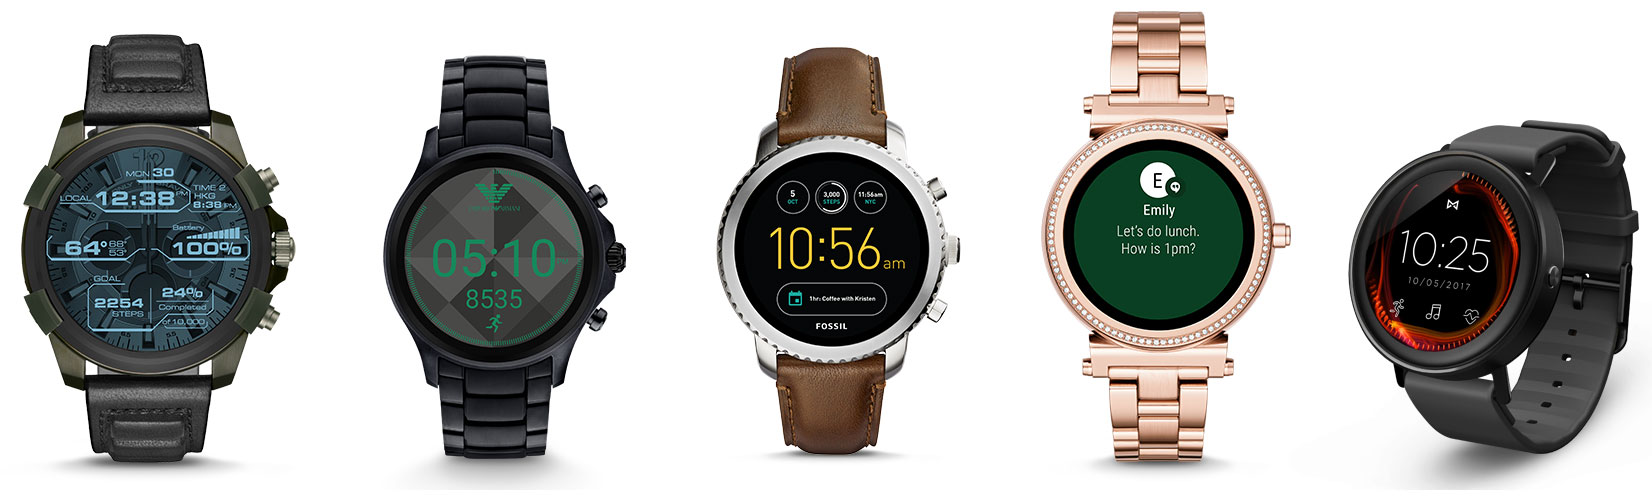 Fossil Group releases new full-round touchscreen smartwatches for Diesel, Emporio Armani, Fossil Q, Michael Kors and Misfit